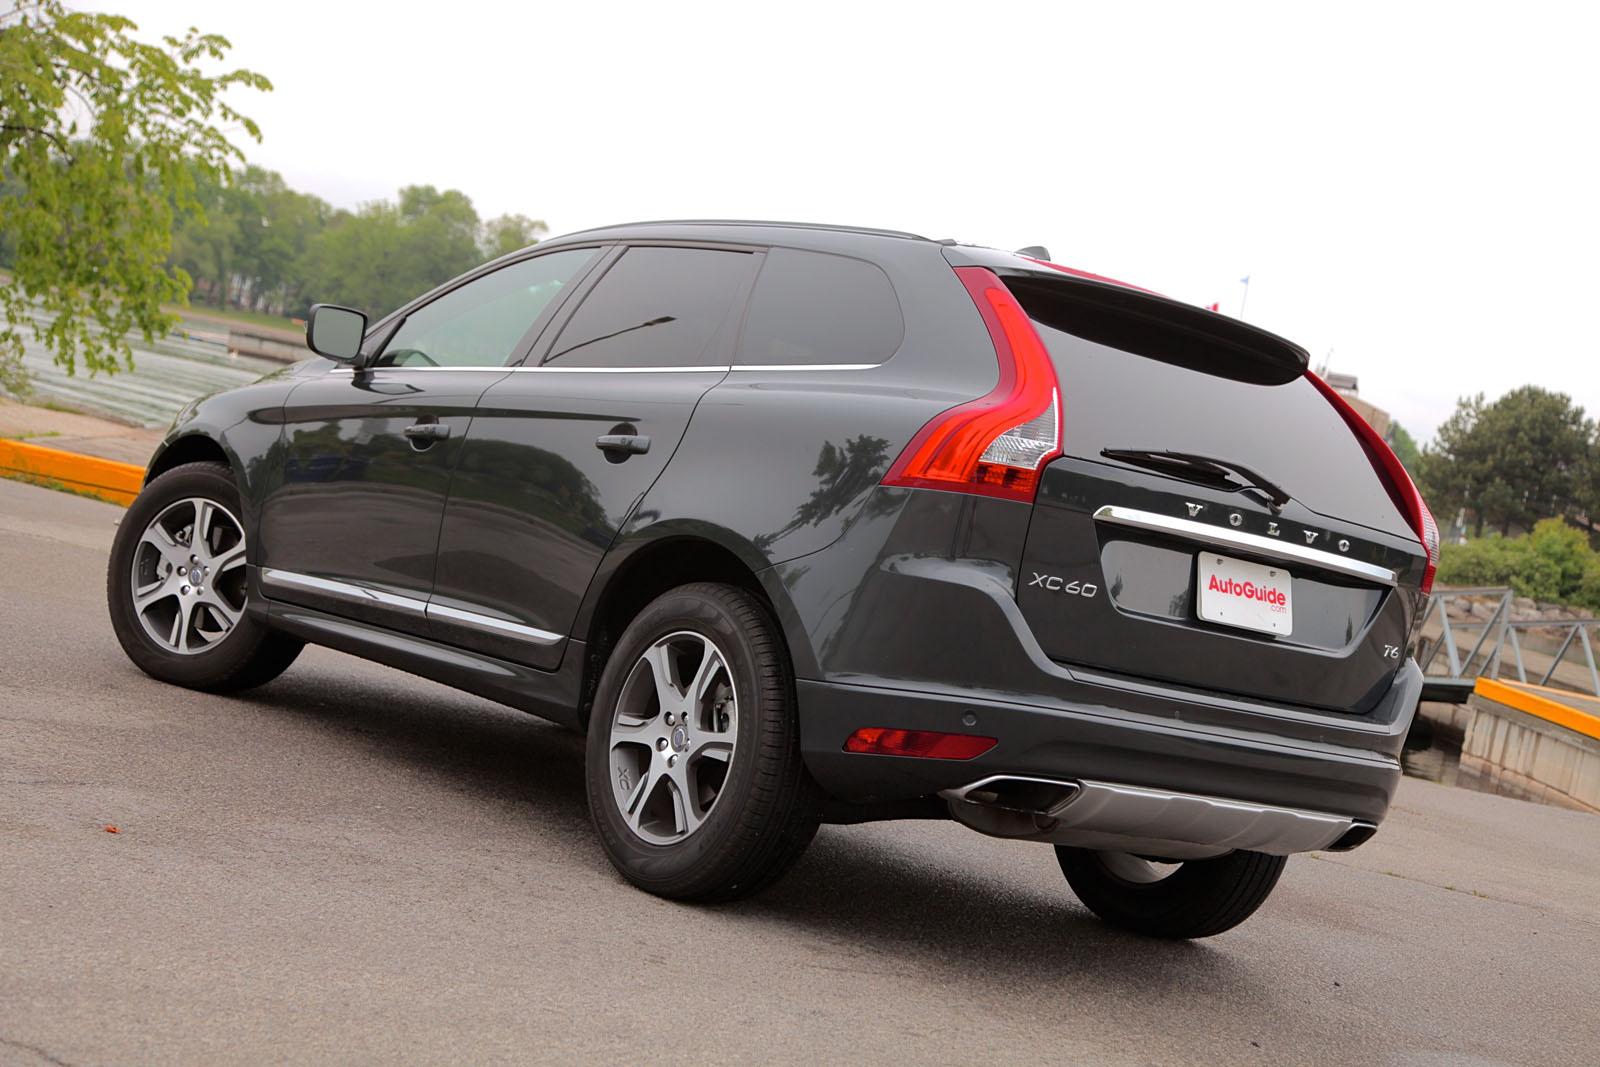 Volvo V40 Cross Country 2018 >> 2015 Volvo XC60 vs Volvo V60 Cross Country -